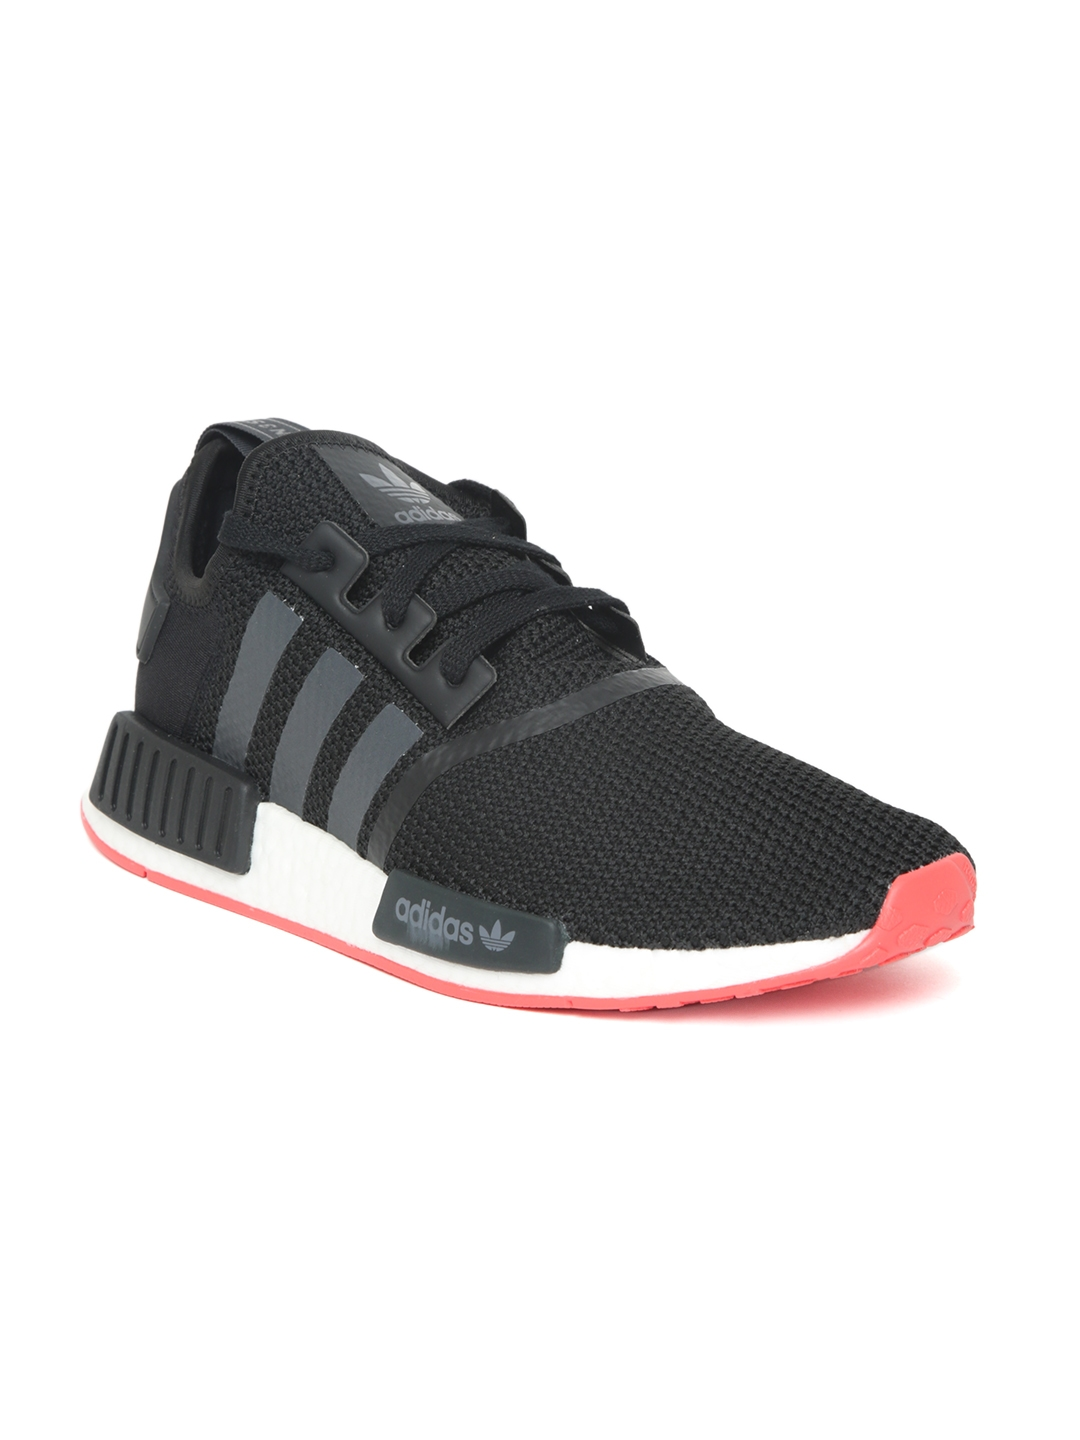 e1a701849a858 Buy ADIDAS Originals Men Black NMD R1 Woven Design Sneakers - Casual Shoes  for Men 3092539